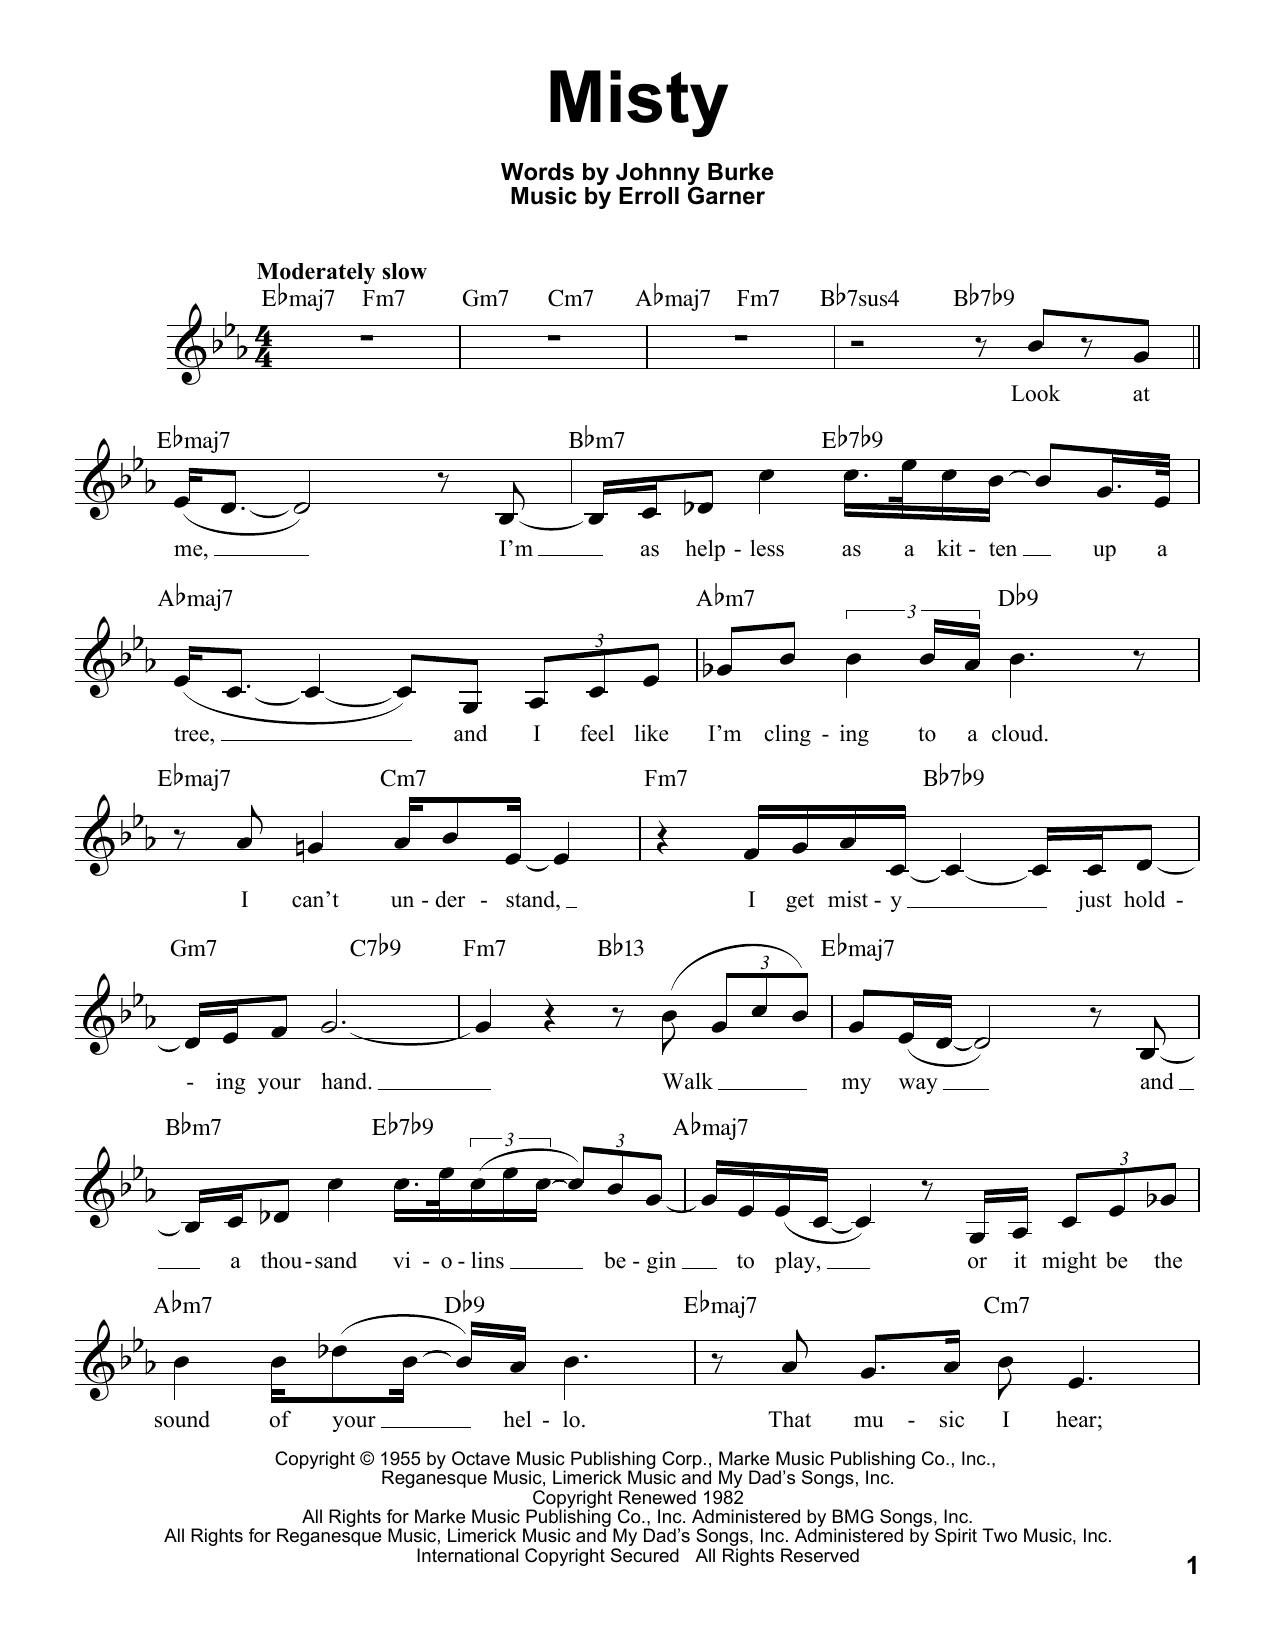 Misty (Pro Vocal) - Print Sheet Music Now